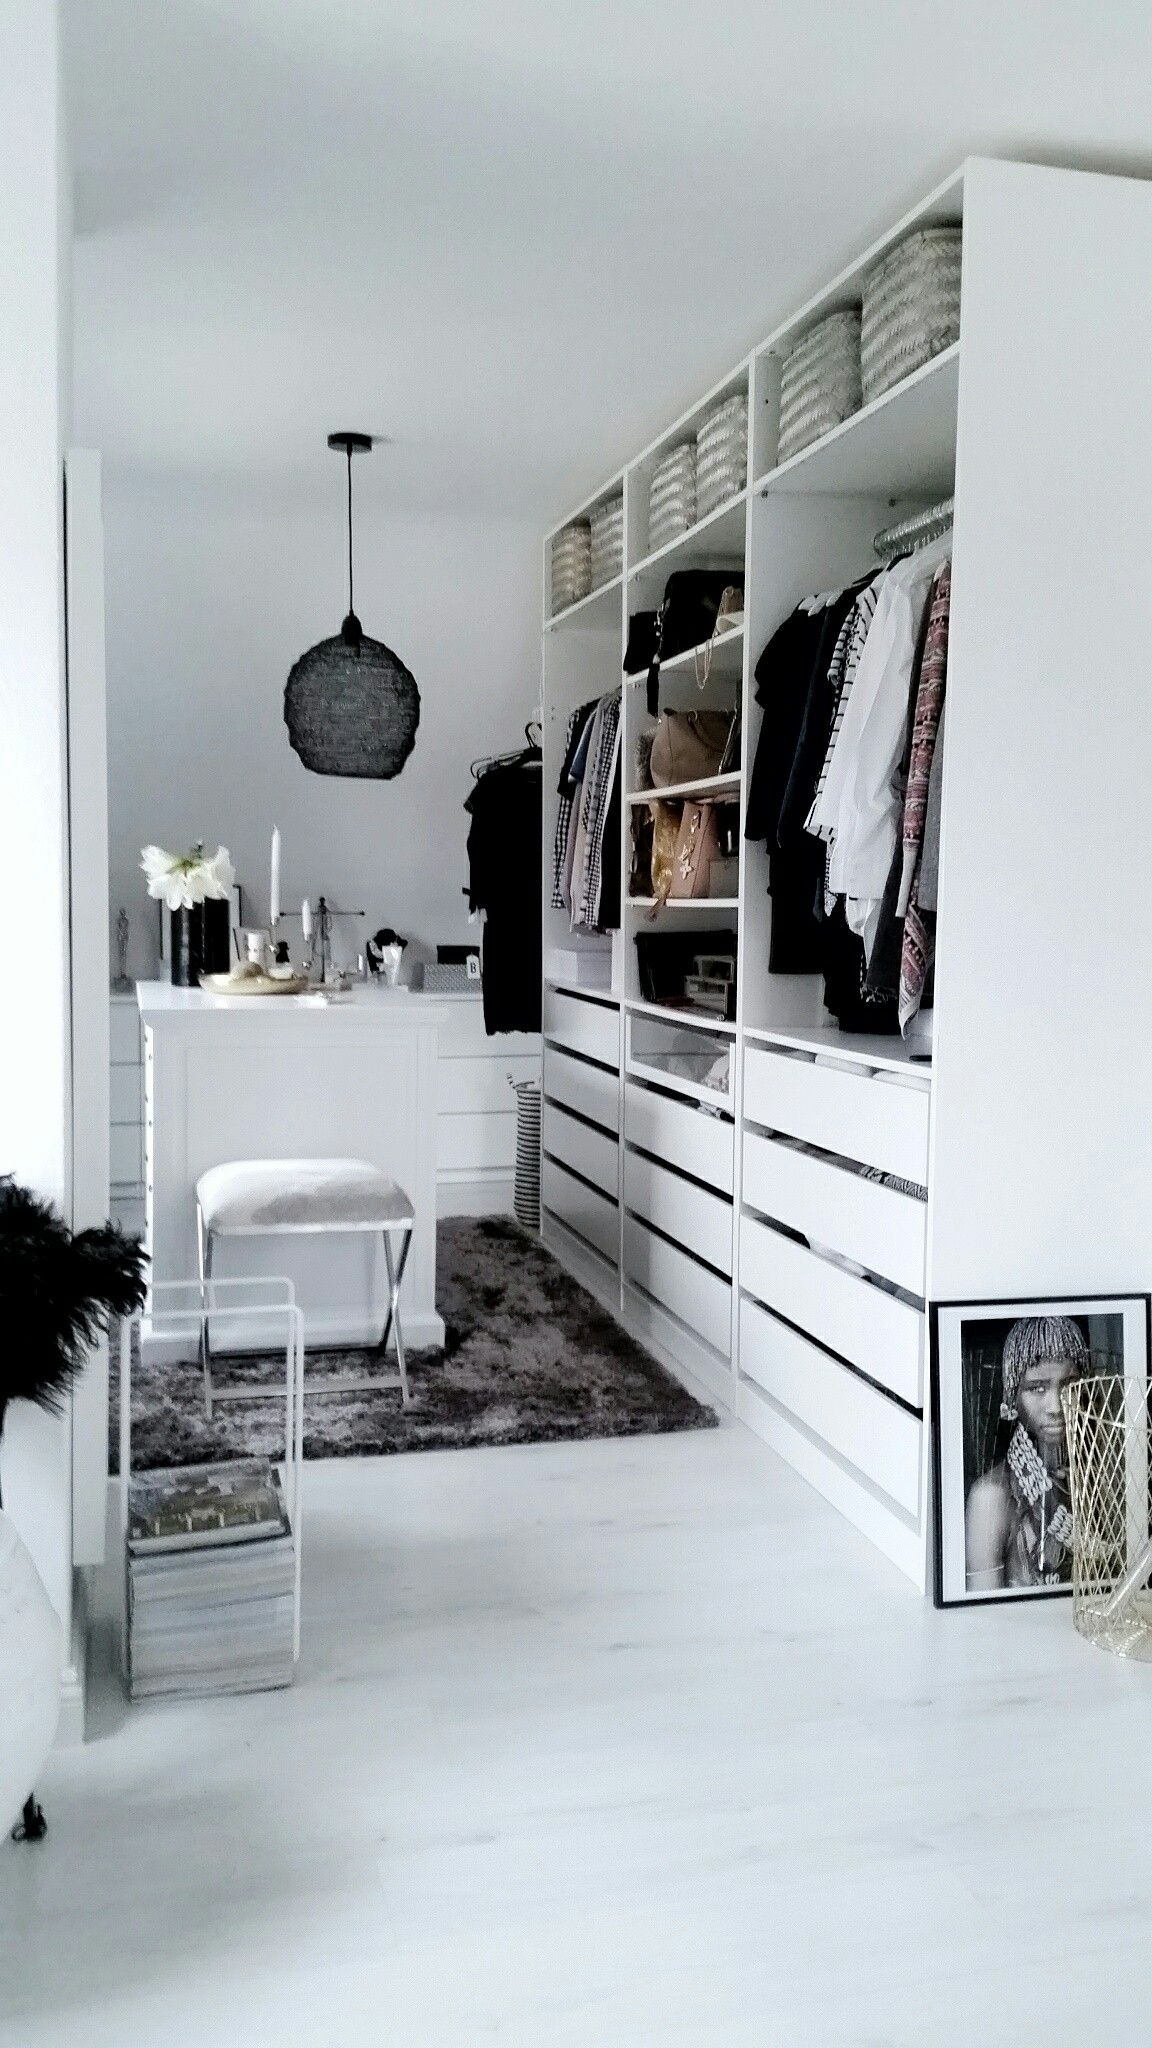 ikea pax ankleidezimmer inspiration weiss casa kleiderschrank schrank e begehbarer. Black Bedroom Furniture Sets. Home Design Ideas